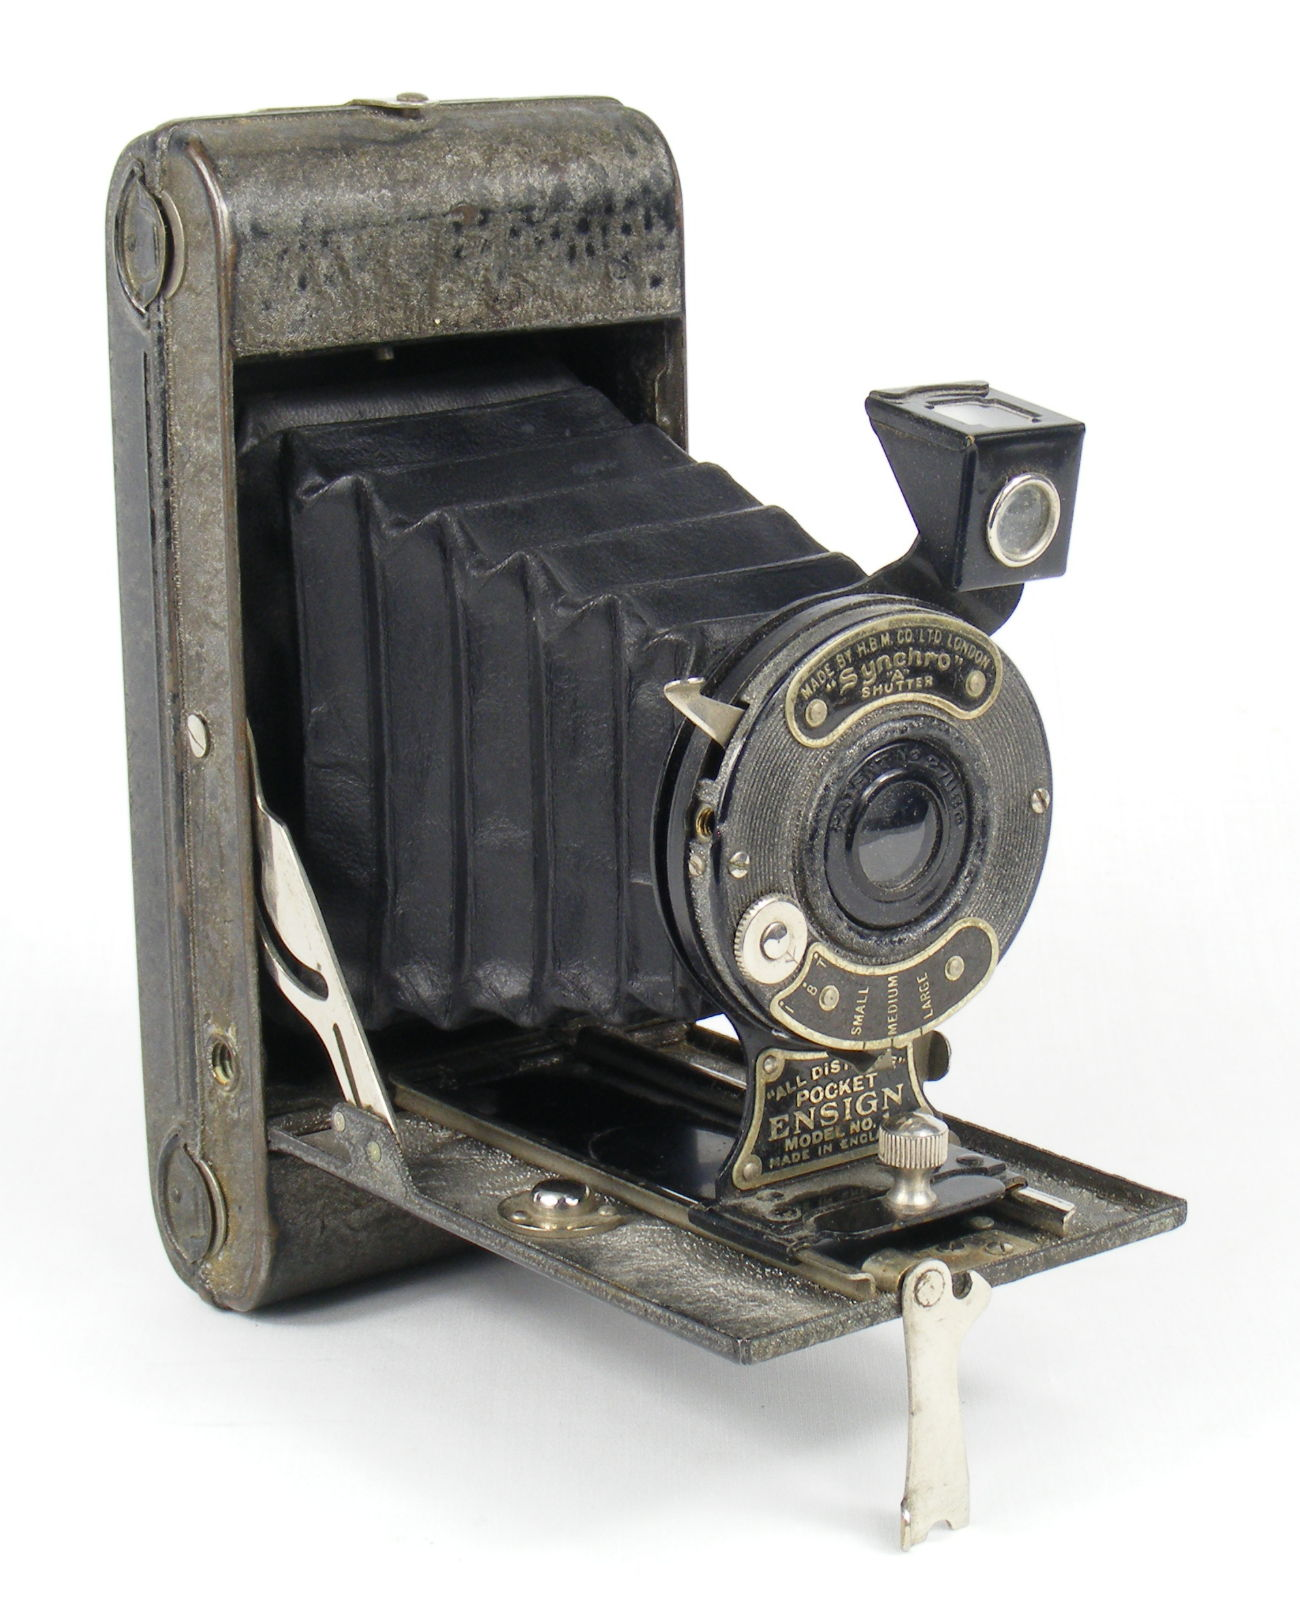 Image of All Distance Pocket Ensign Folding Camera (silver/grey)